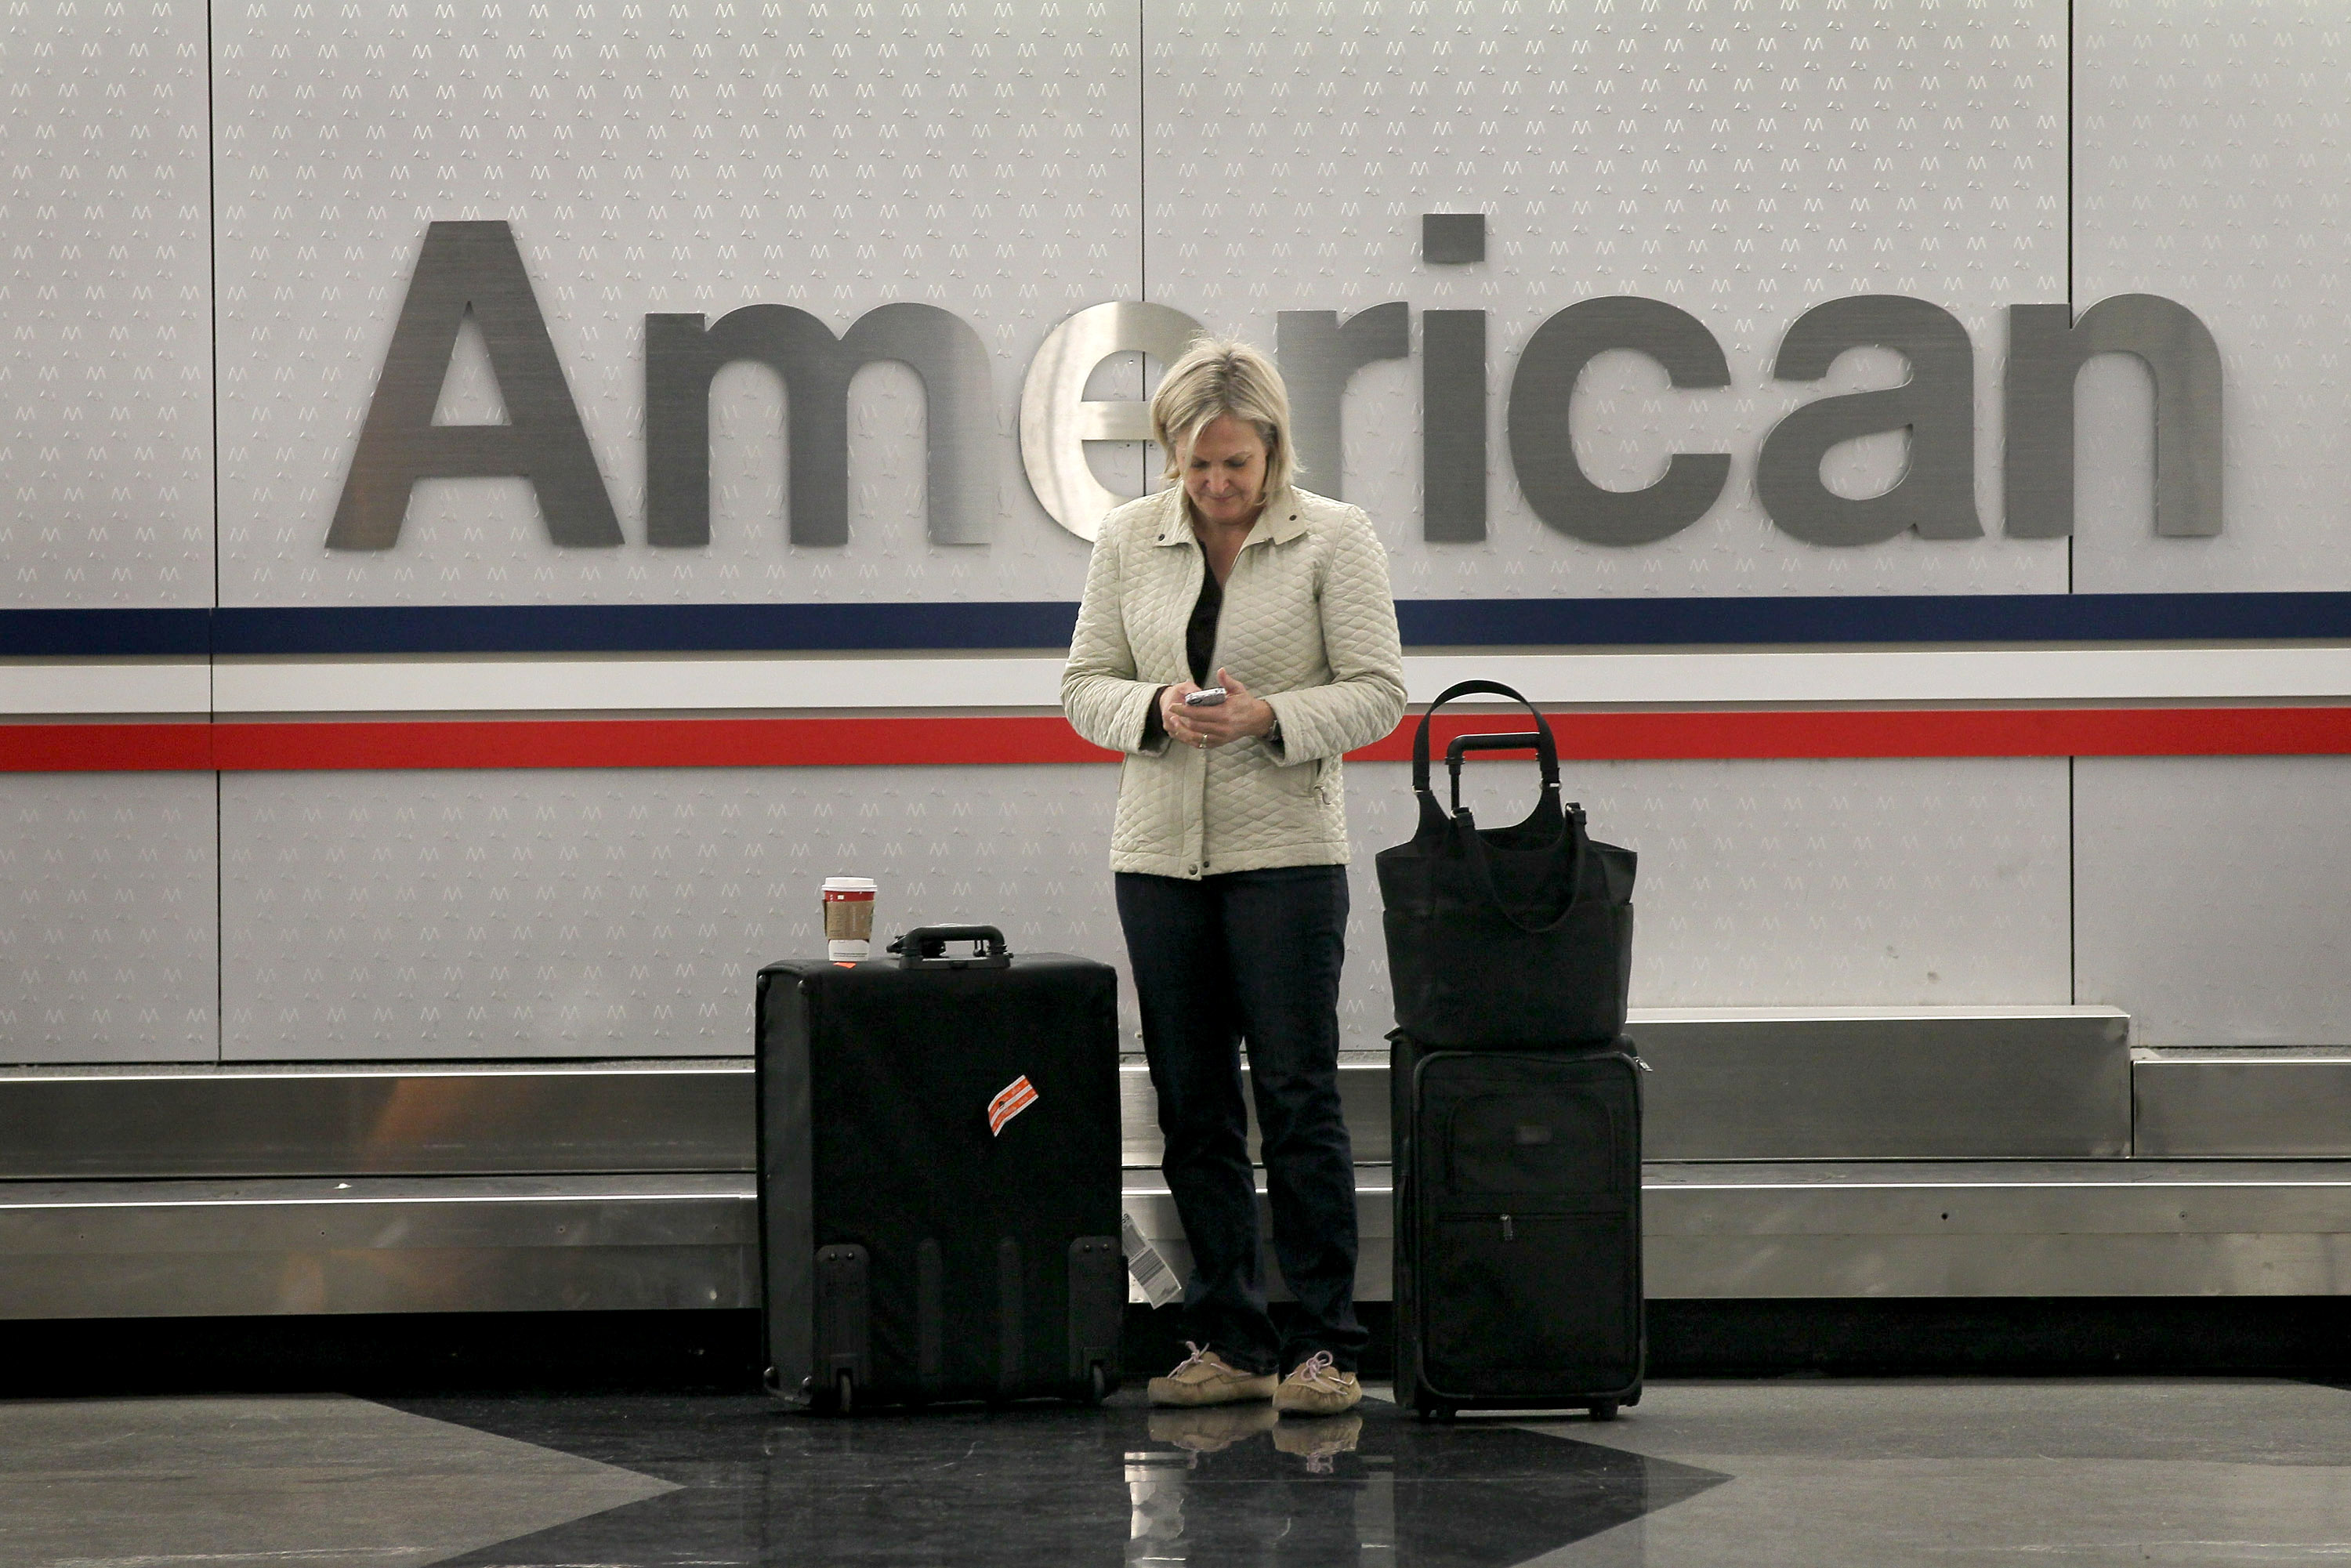 An American Airlines passenger waits for her luggage at O'Hare Airport in Chicago.